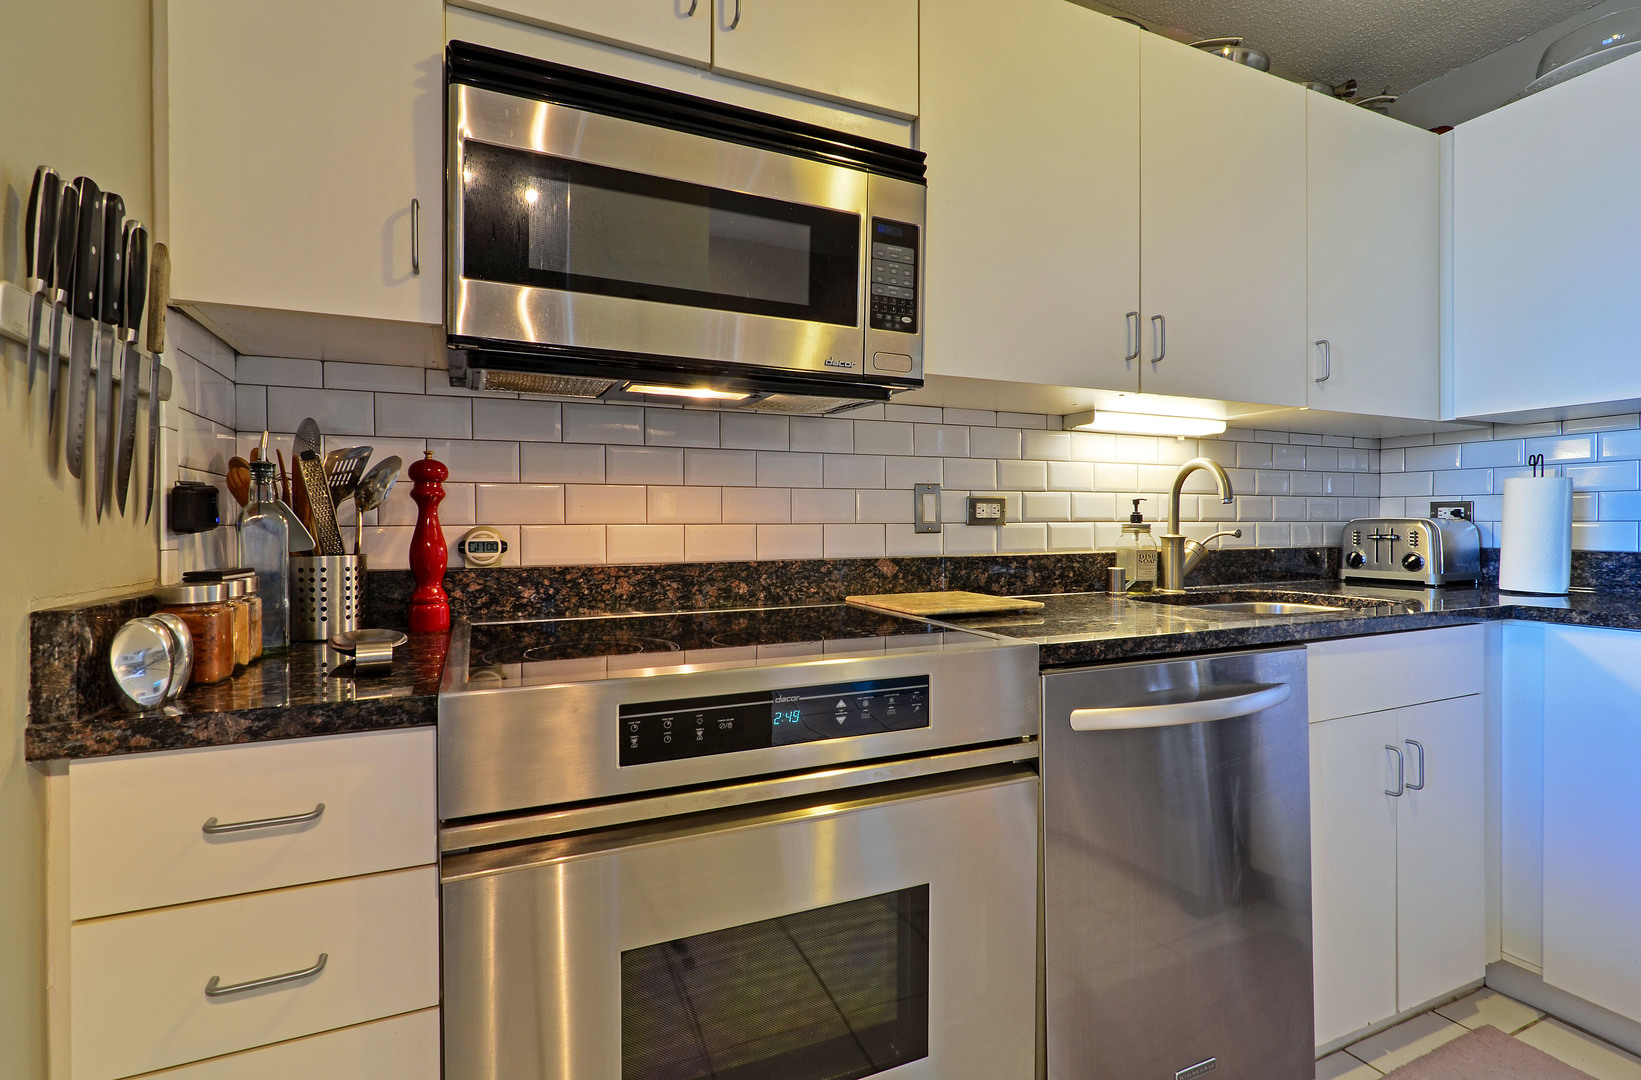 405 NORTH WABASH AVENUE #3106, CHICAGO, IL 60611  Photo 7